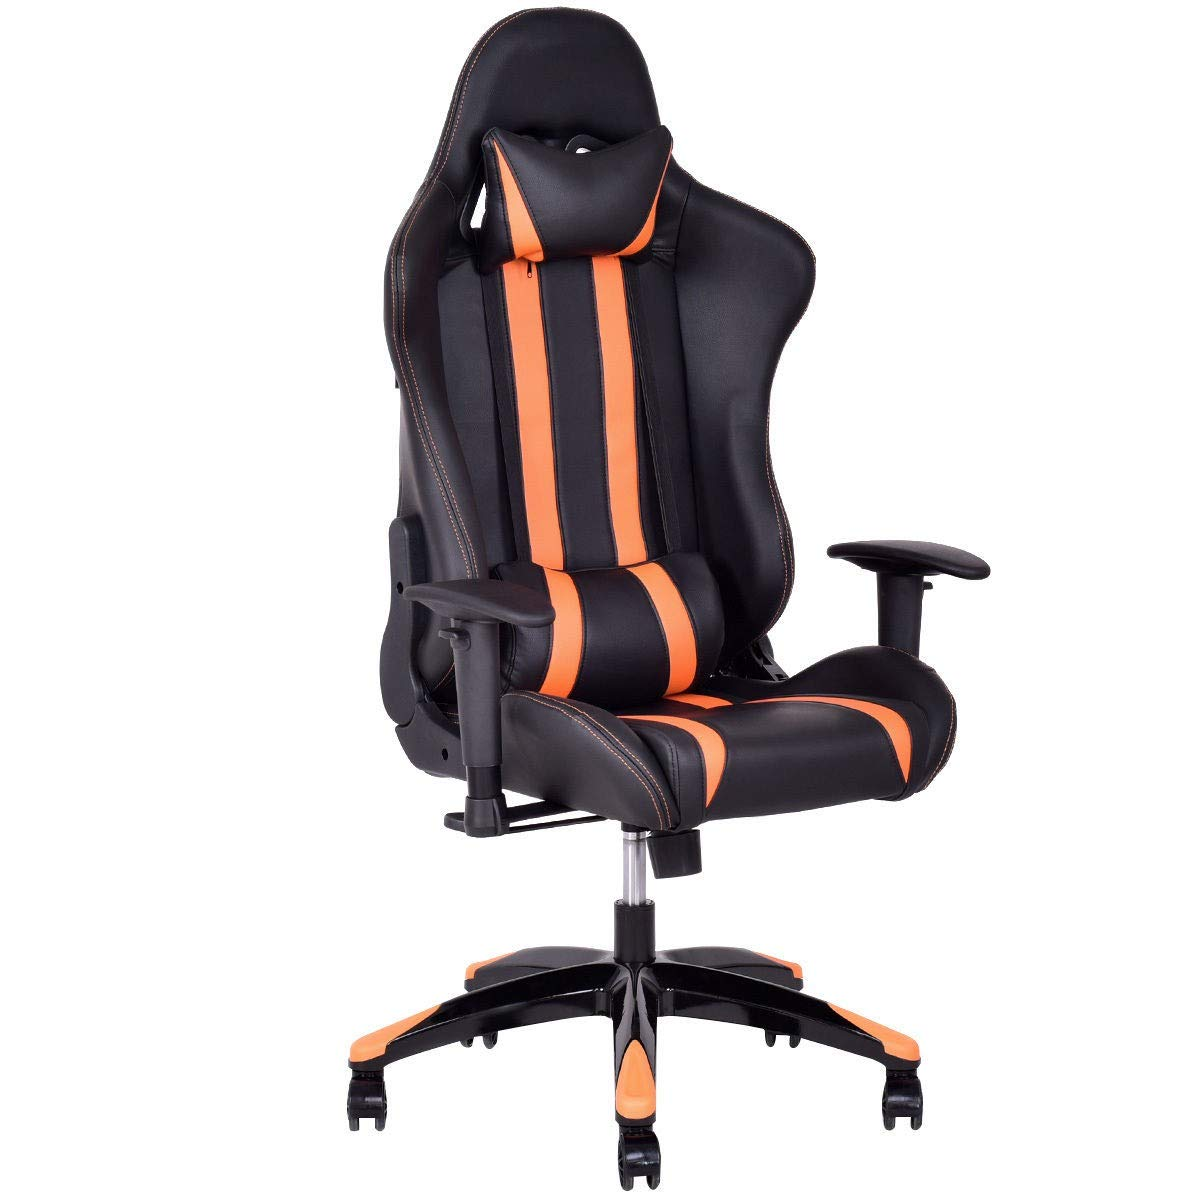 Dayanaprincess High-Back Reclining Racing Gaming Chair with Head-Rest Pillow Contemporary Design Comfortable Seat with Armrest Solid Construction Workstation Home Office Furniture (Orange) by Dayanaprincess (Image #1)